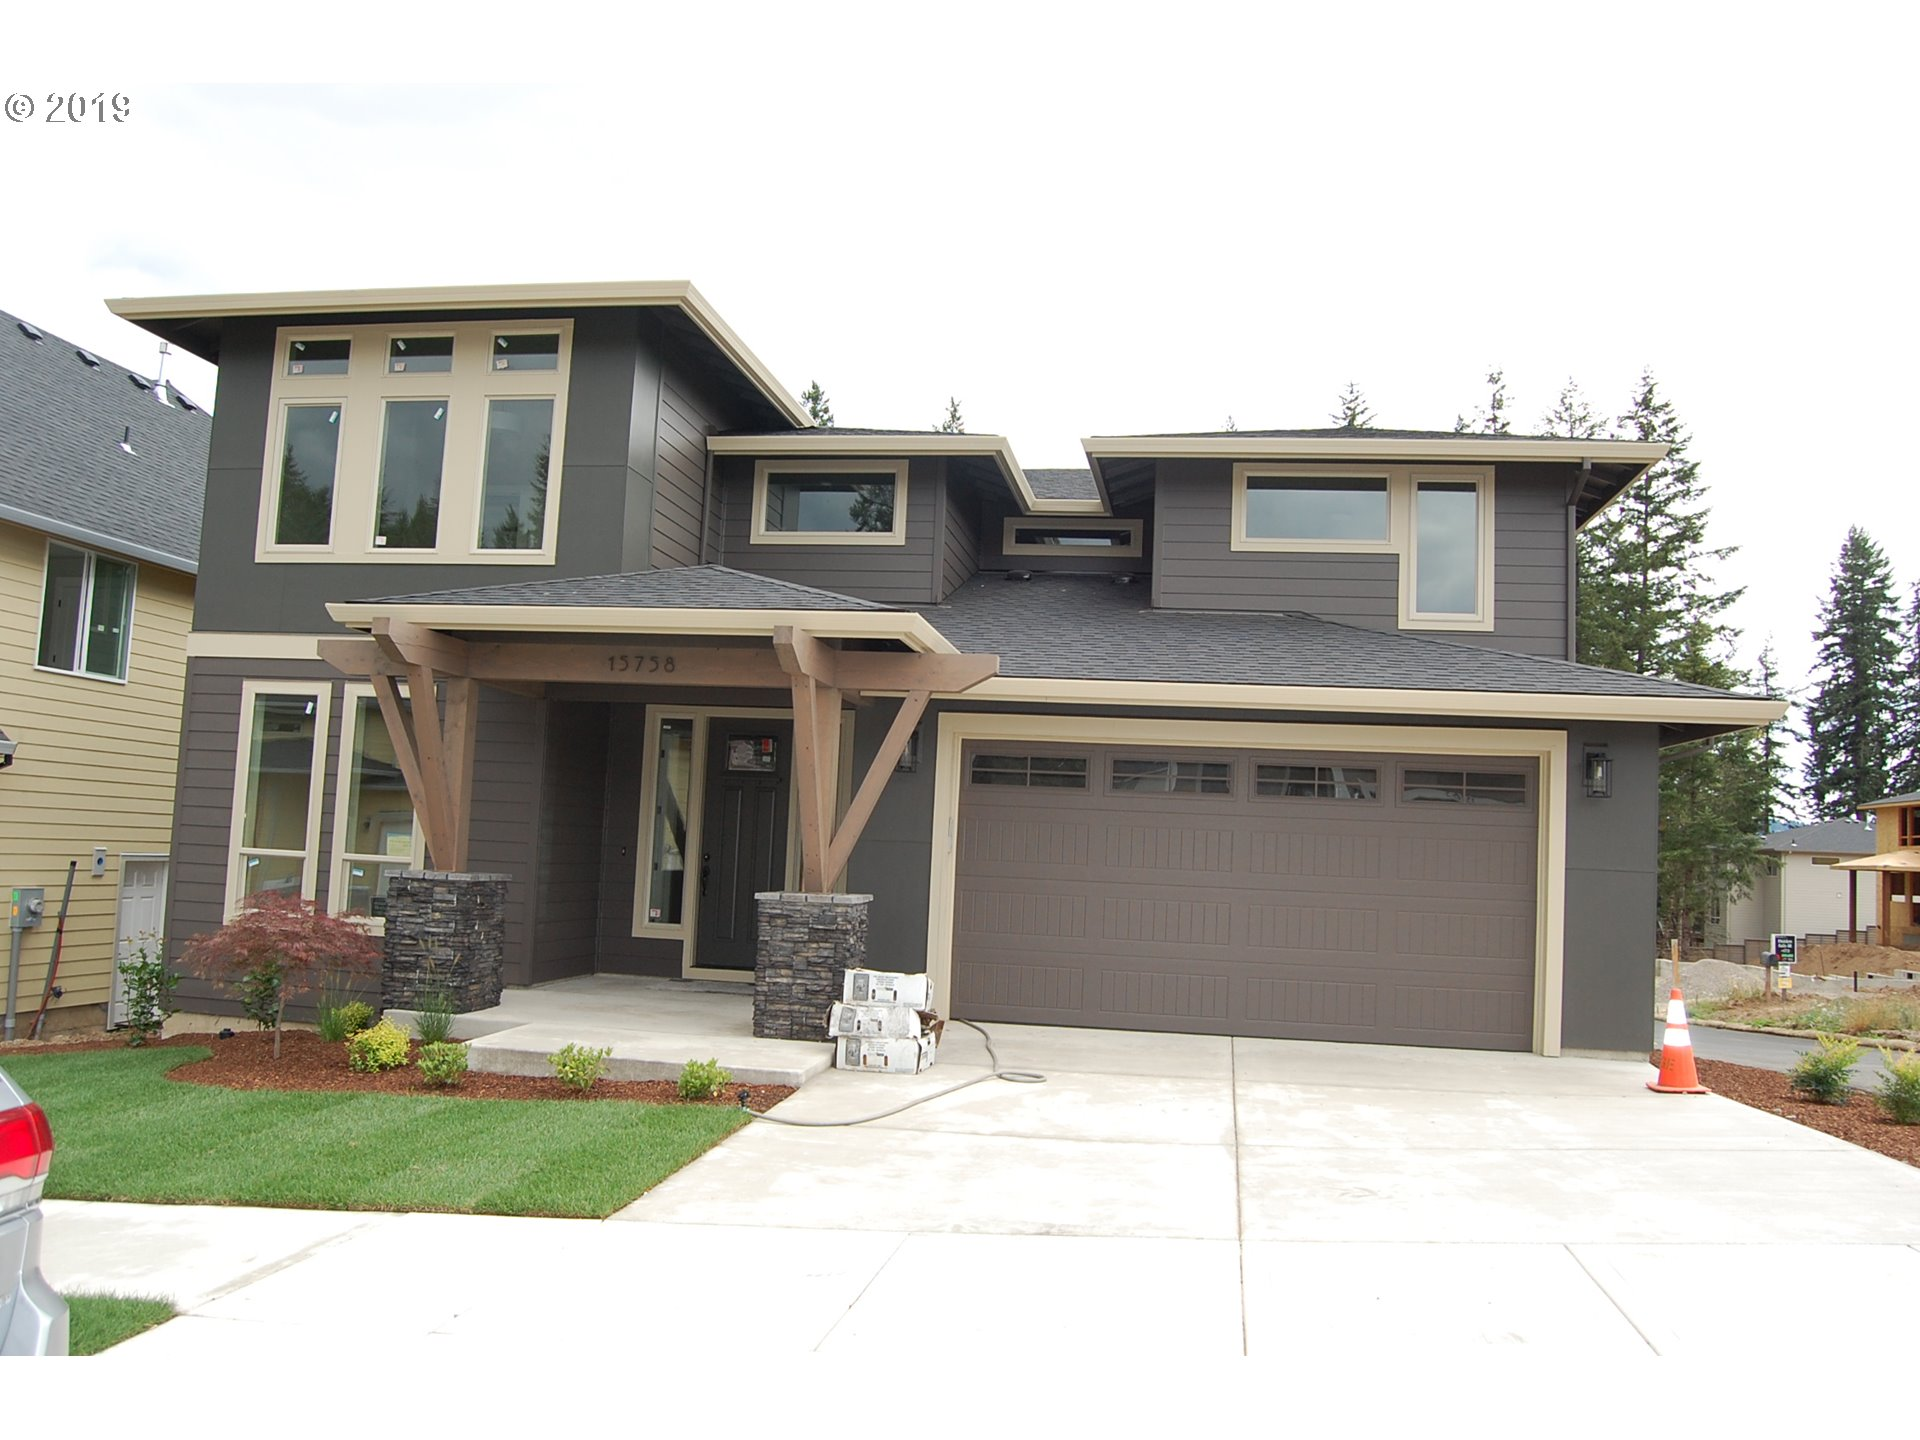 Photo of 15758 Bollam DR Happy Valley OR 97015